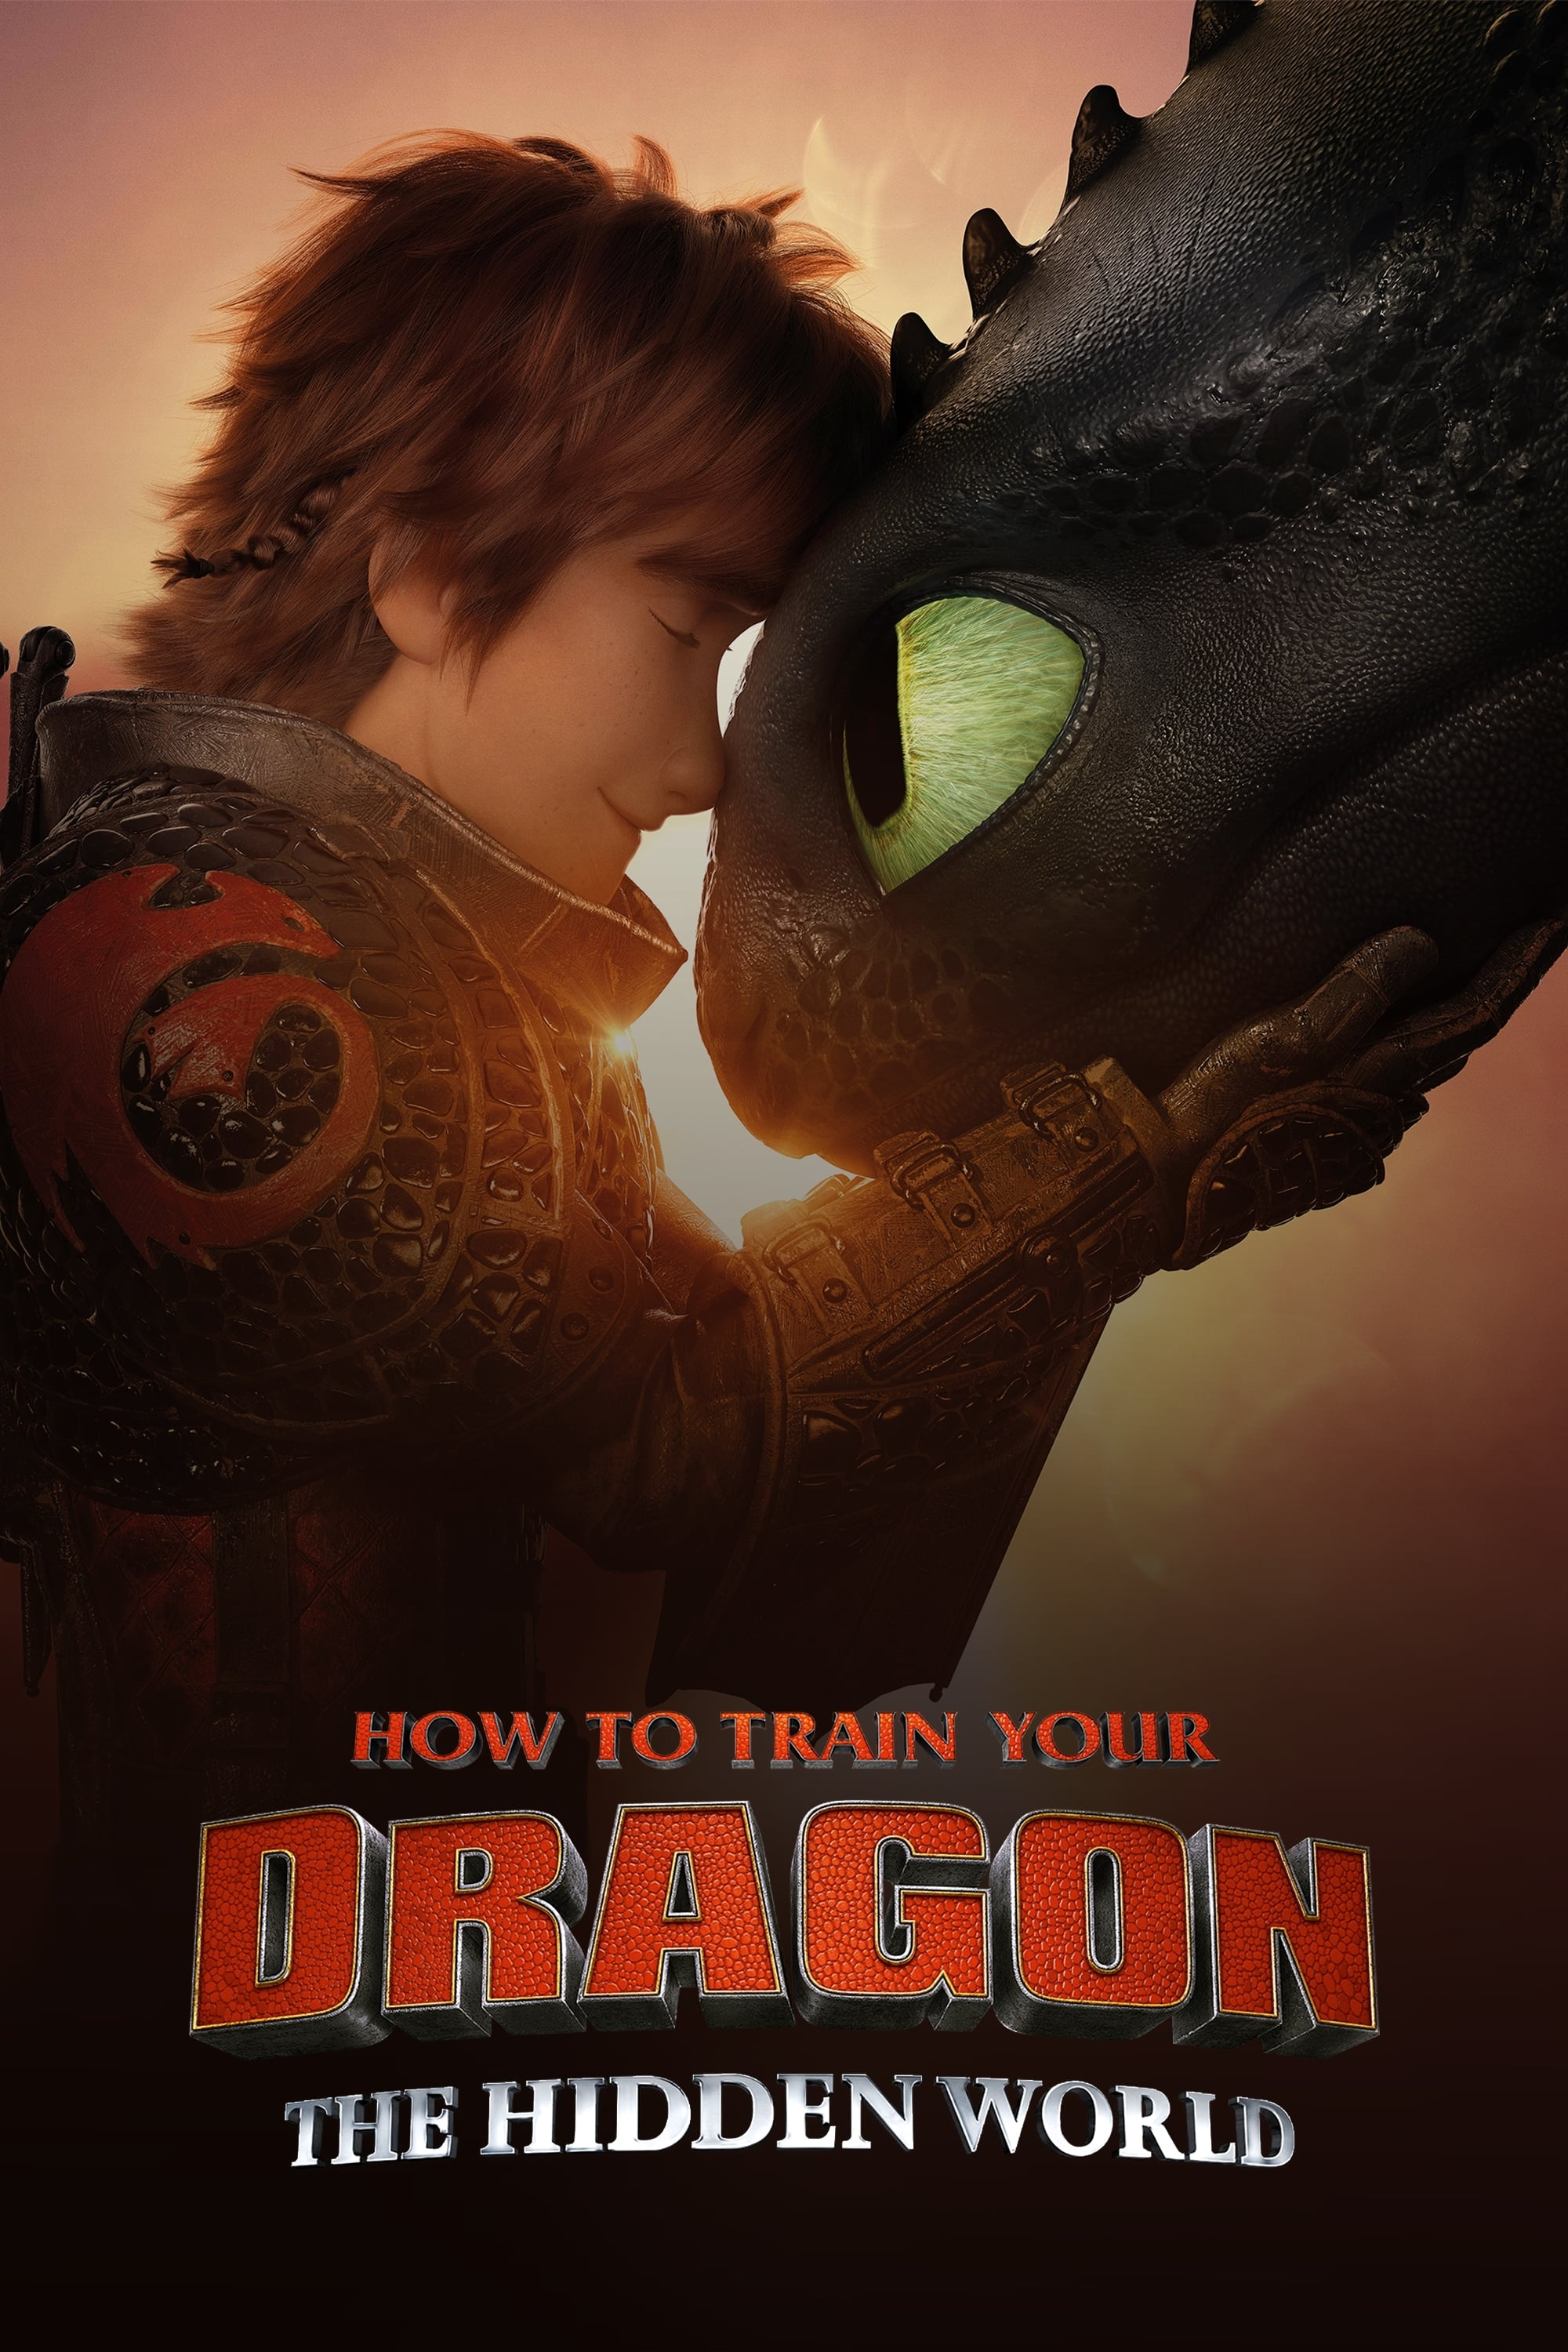 How To Train Your Dragon The Hidden World 2019 Posters The Movie Database Tmdb